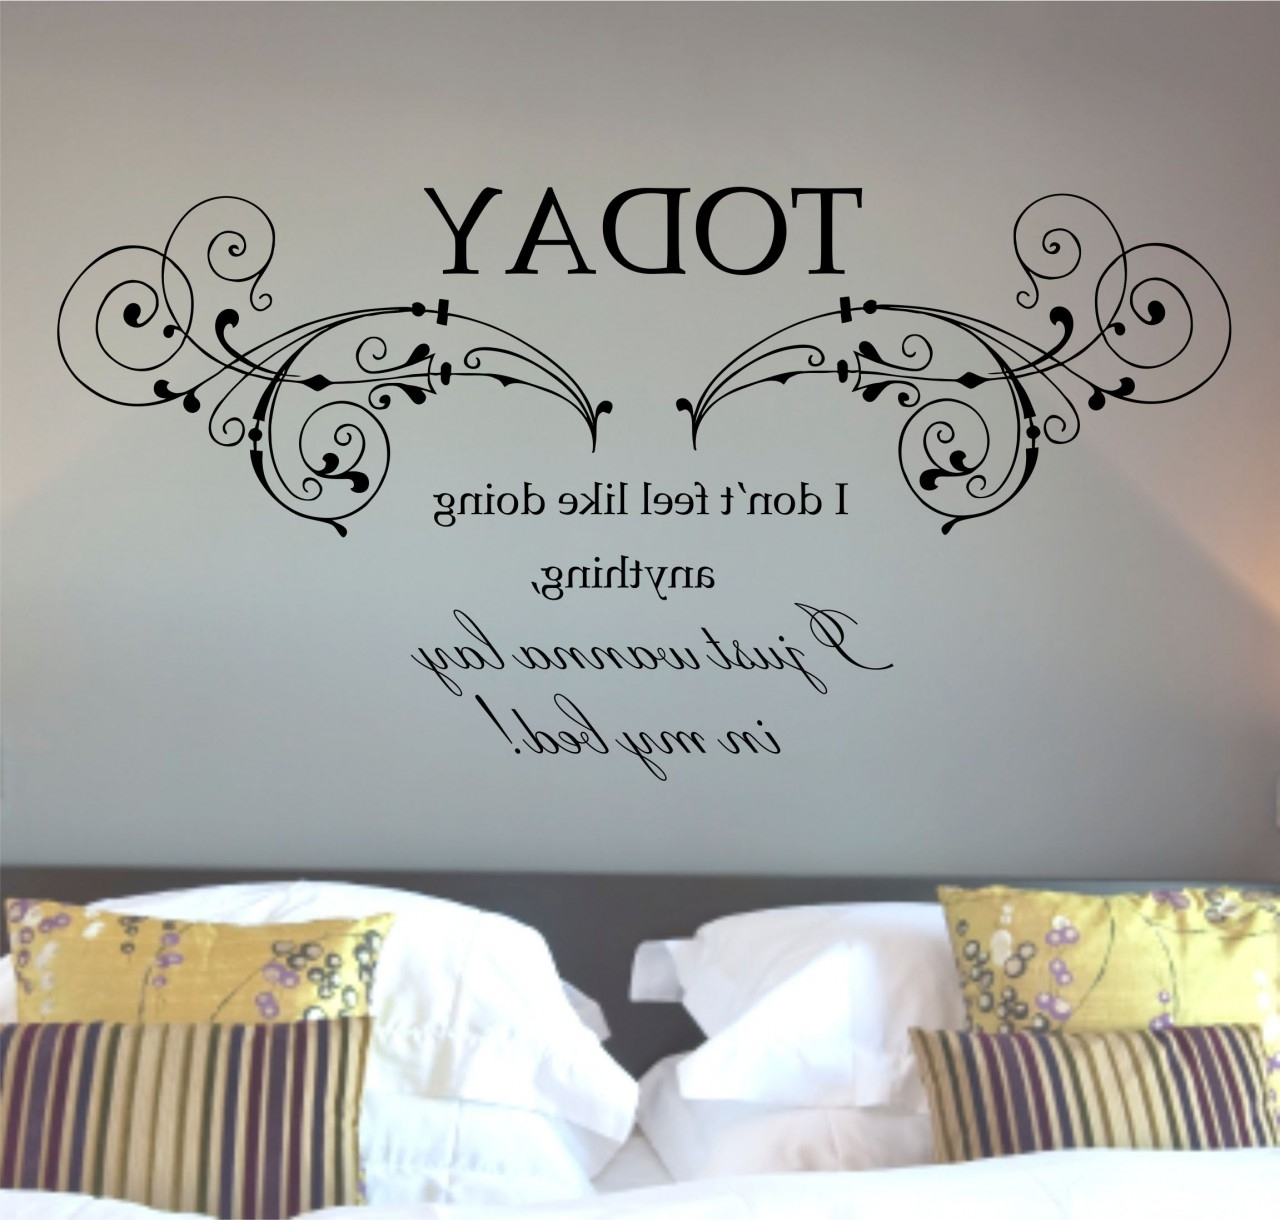 Mars Lazy Song Quote Wall Art Sticker Decal (View 15 of 15)